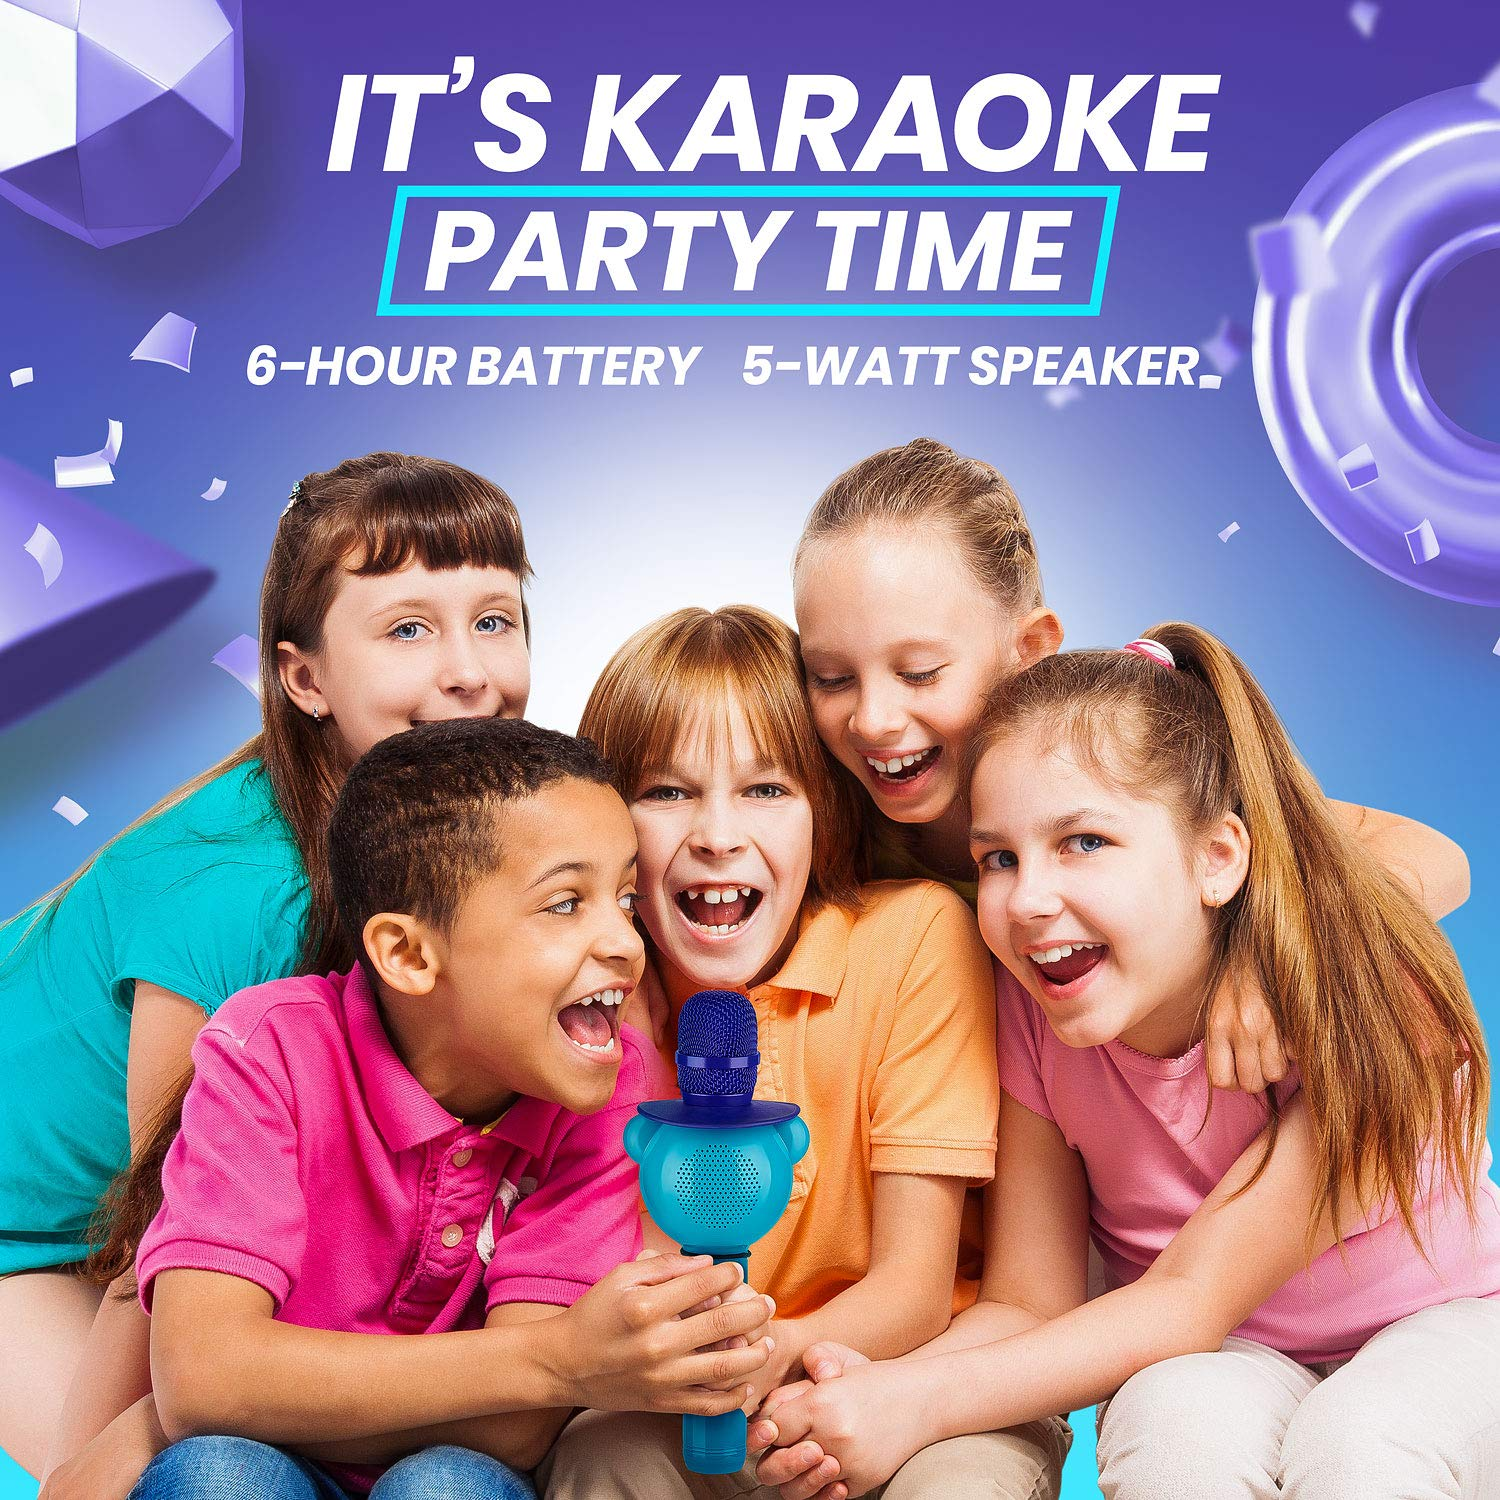 Wireless Karaoke Microphone for Kids - Bluetooth Mic Great for Solo Singing, KTV Parties, Magic Boys & Girls Christmas or Birthday Gifts - Portable Karaoke Machine for Kids Pop [Blue] by KaraoKing by KaraoKing (Image #5)